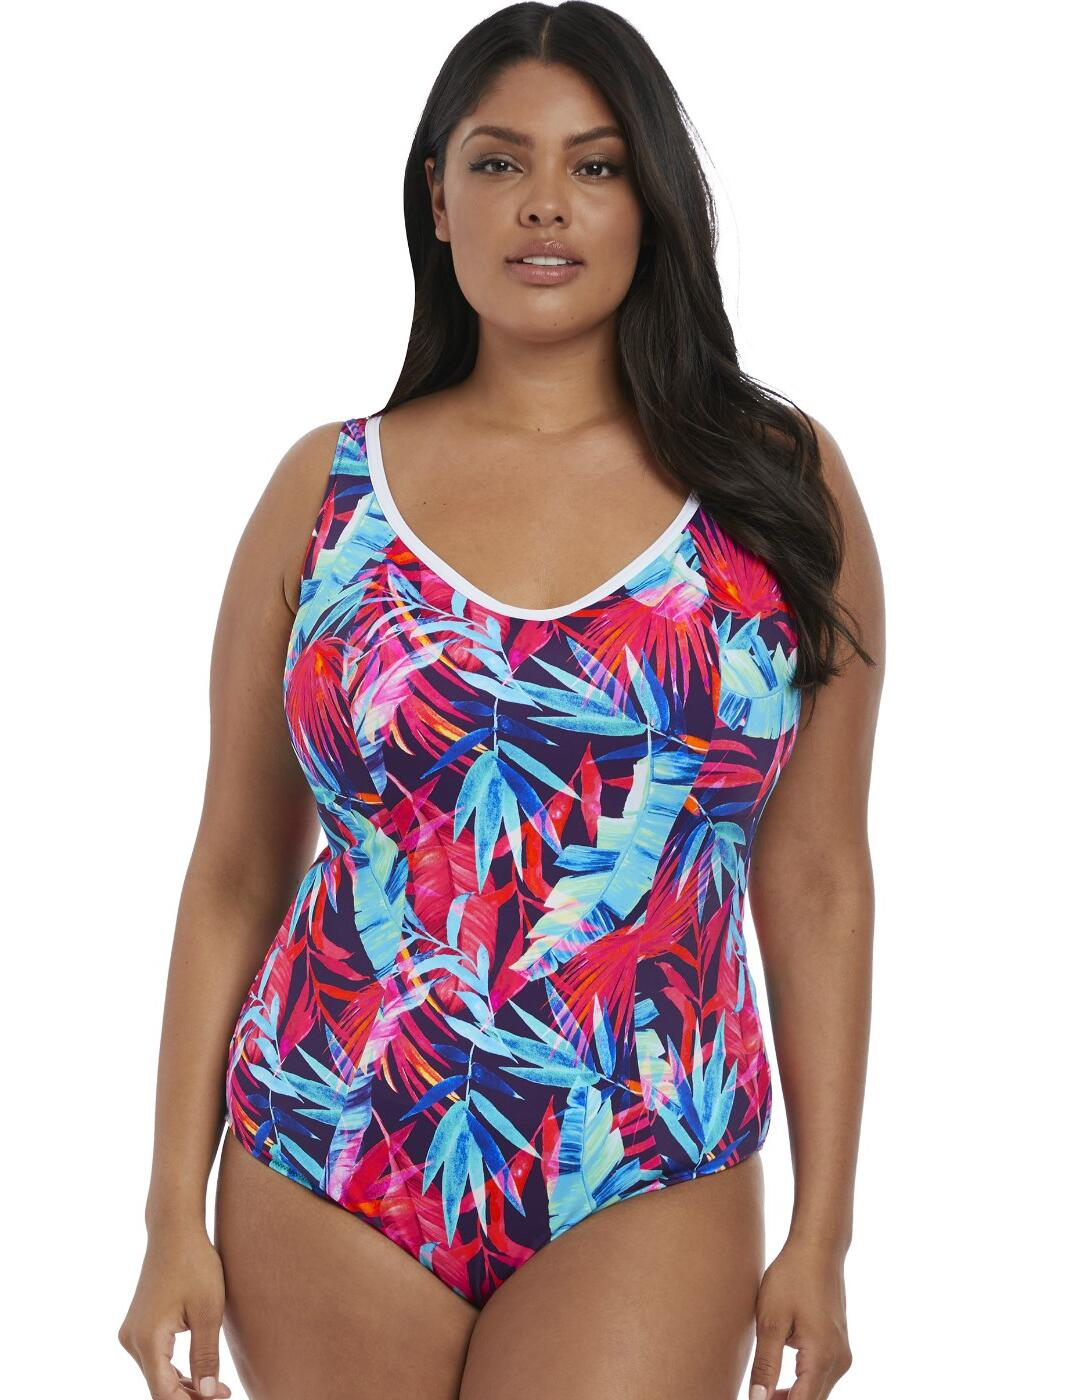 7140 Elomi Paradise Palm Moulded Swimsuit - 7140 Ink